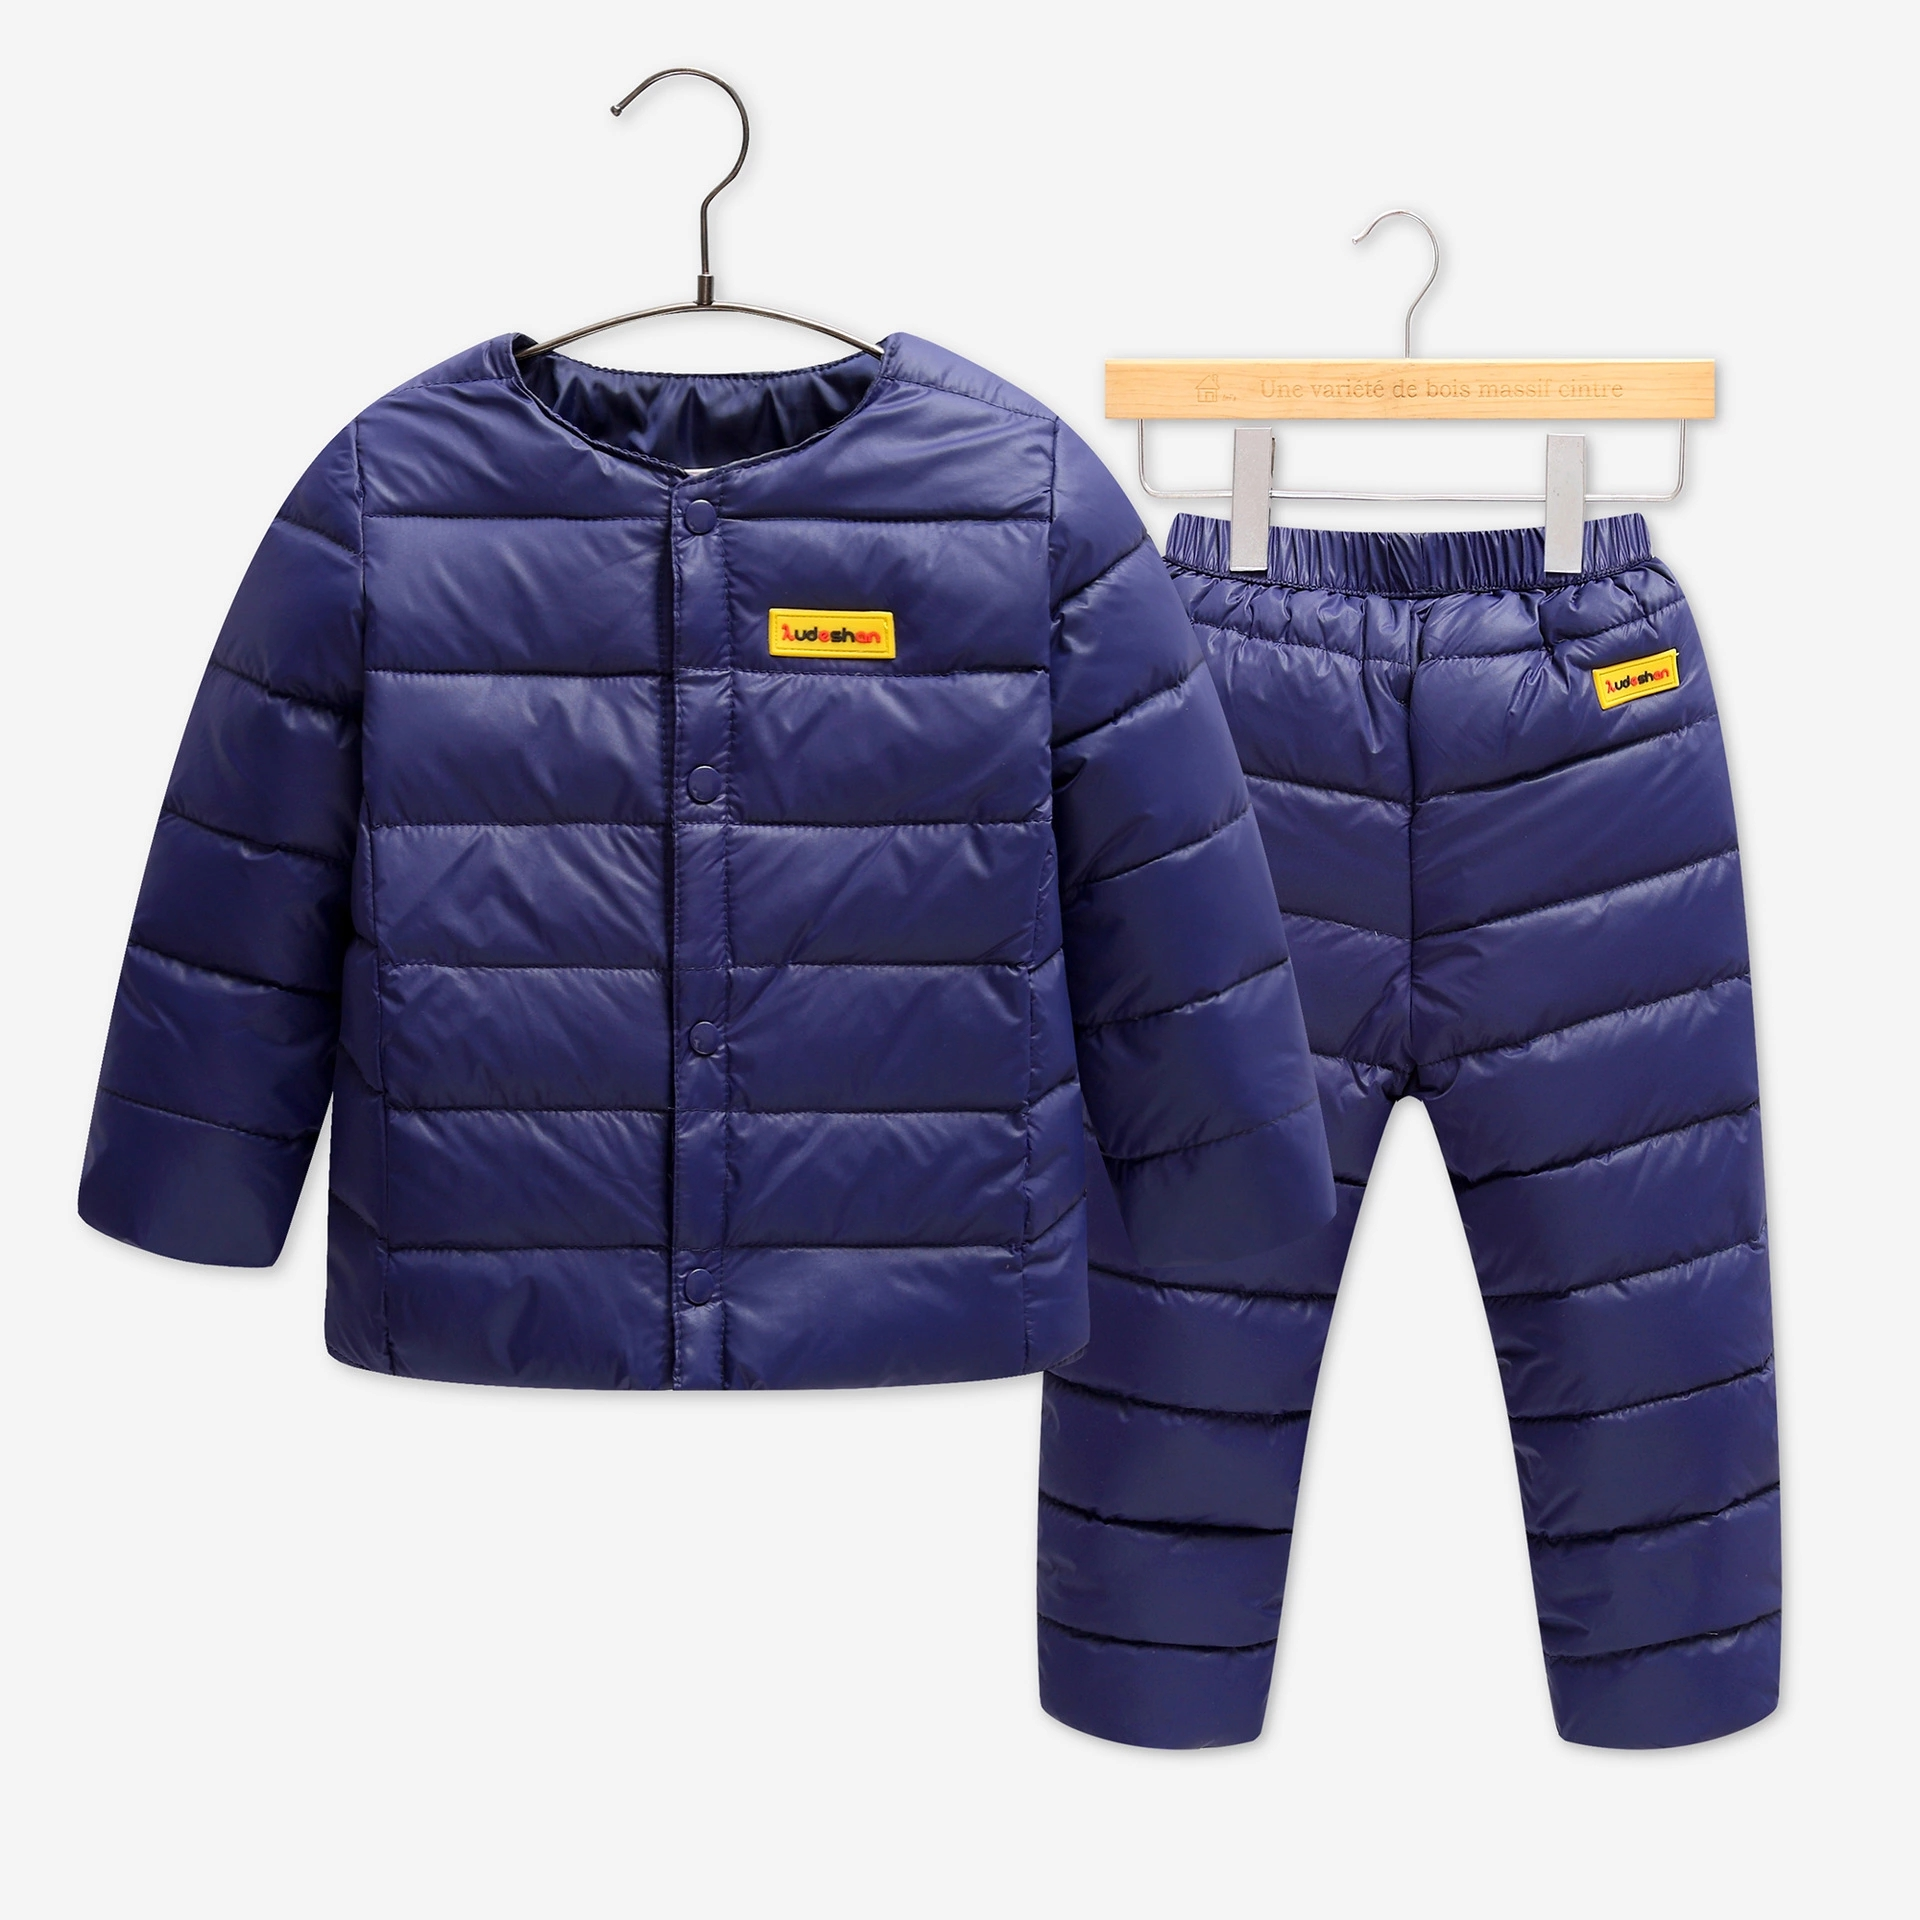 1-6 years Children Set Boys Girls Clothing Sets Winter Coat Down Jacket+Trousers Waterproof Snow Warm kids Clothes suit 2016 winter boys ski suit set children s snowsuit for baby girl snow overalls ntural fur down jackets trousers clothing sets